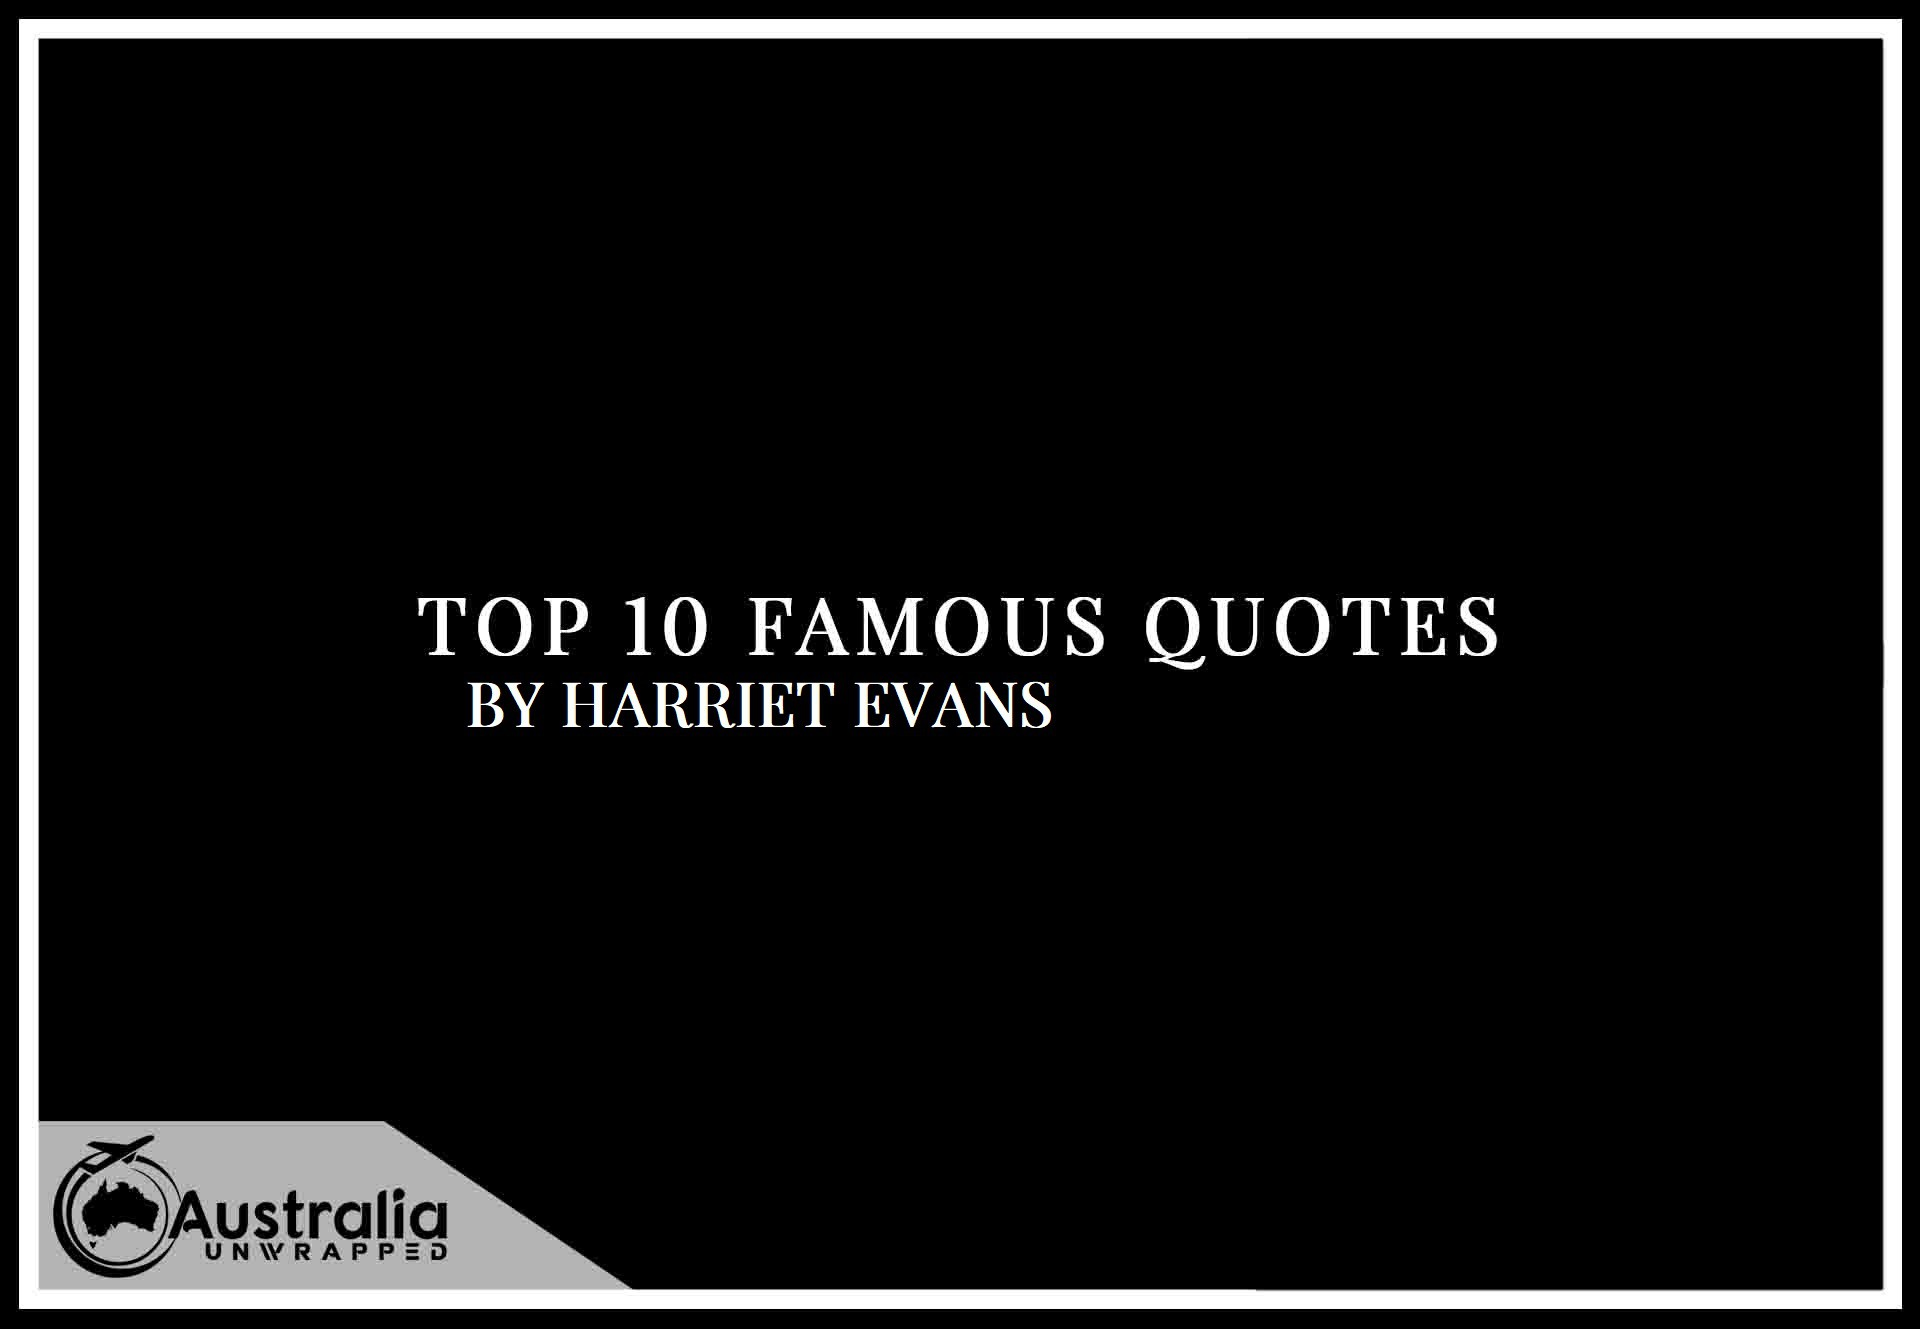 Top 10 Famous Quotes by Author Harriet Evans